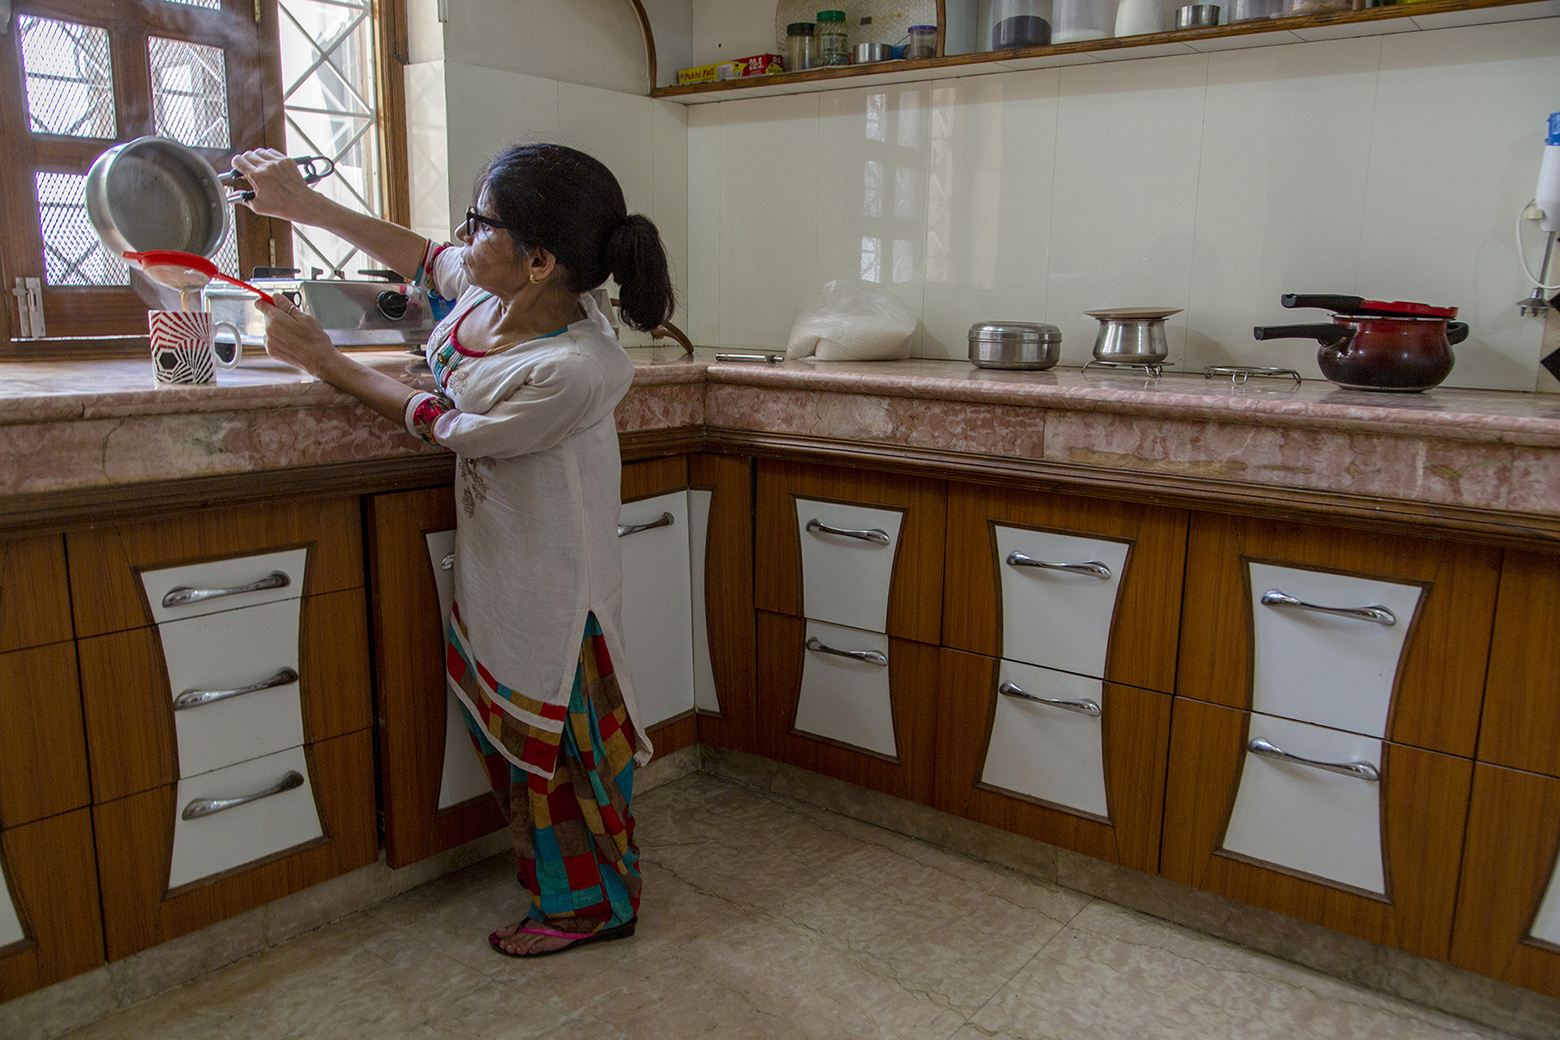 Kavita is making tea in her kitchen. On top of the pink marble platform are steel vessels and a gas stove. Below the platform are many wooden drawers with steel handles. Kavita is pouring tea from an aluminium pan through an orange coloured strainer into a mug.